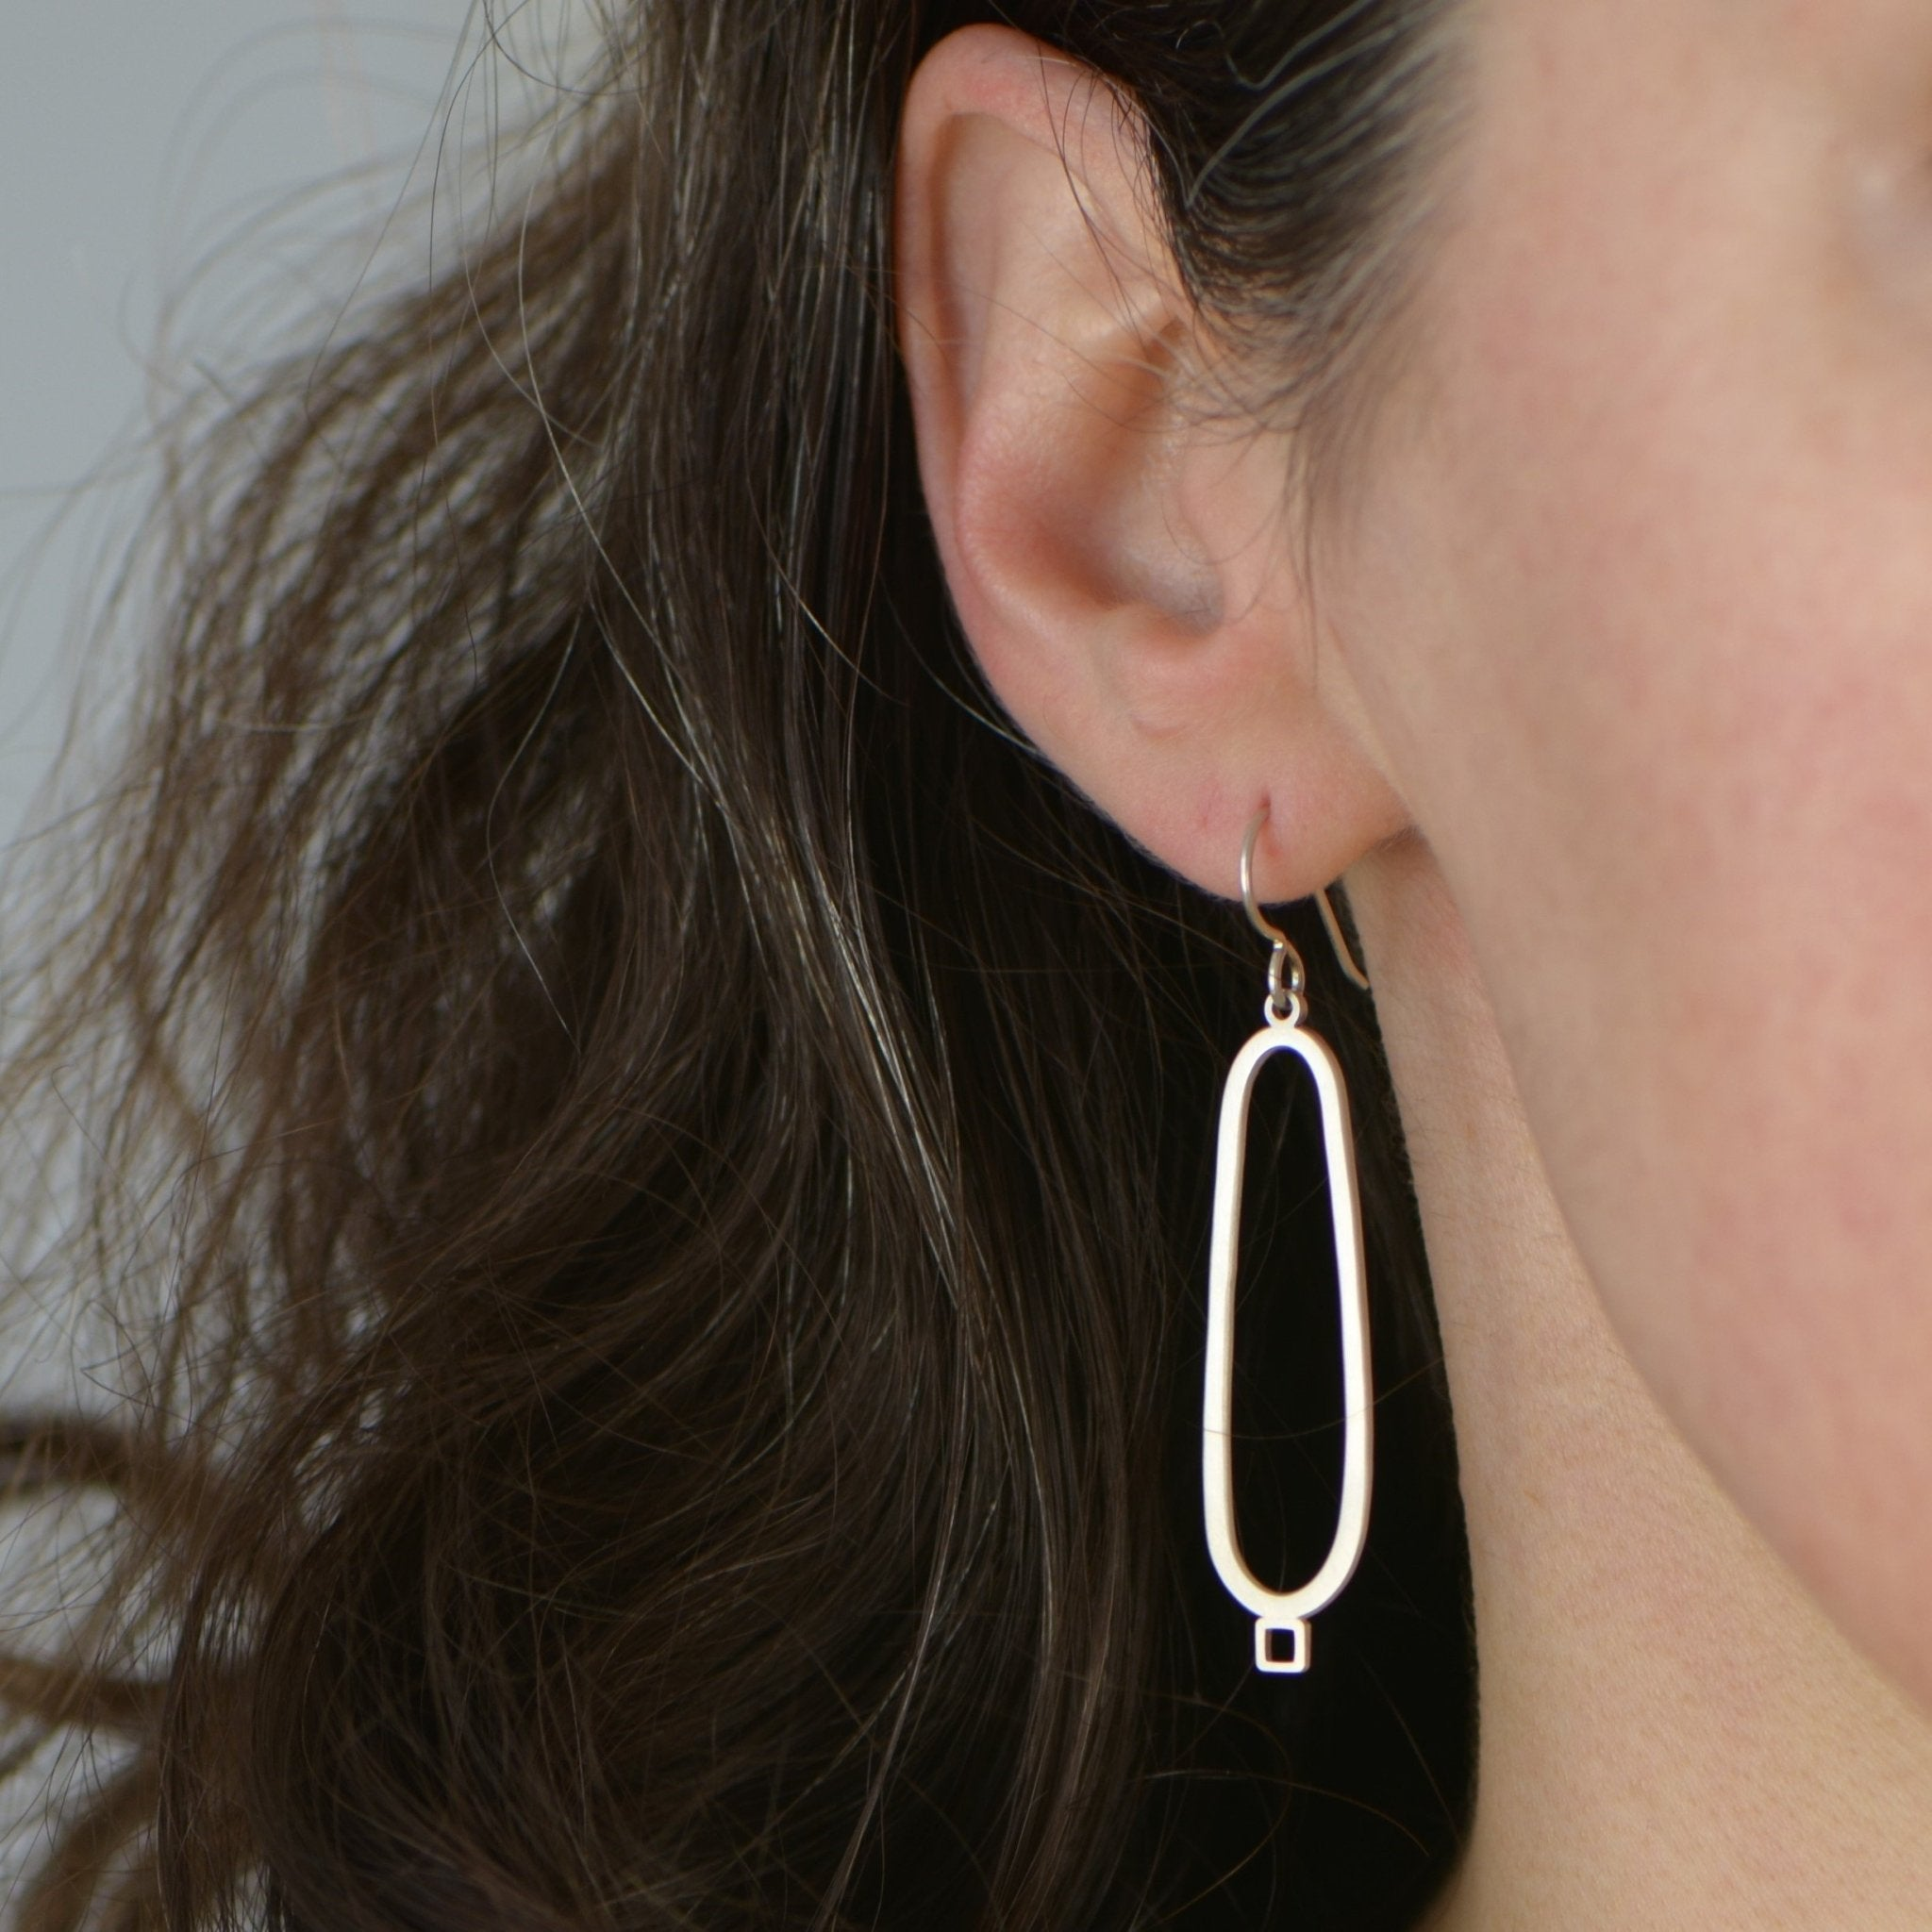 Oval With Square Detail Dangle Earrings - Amalia Moon Jewelry